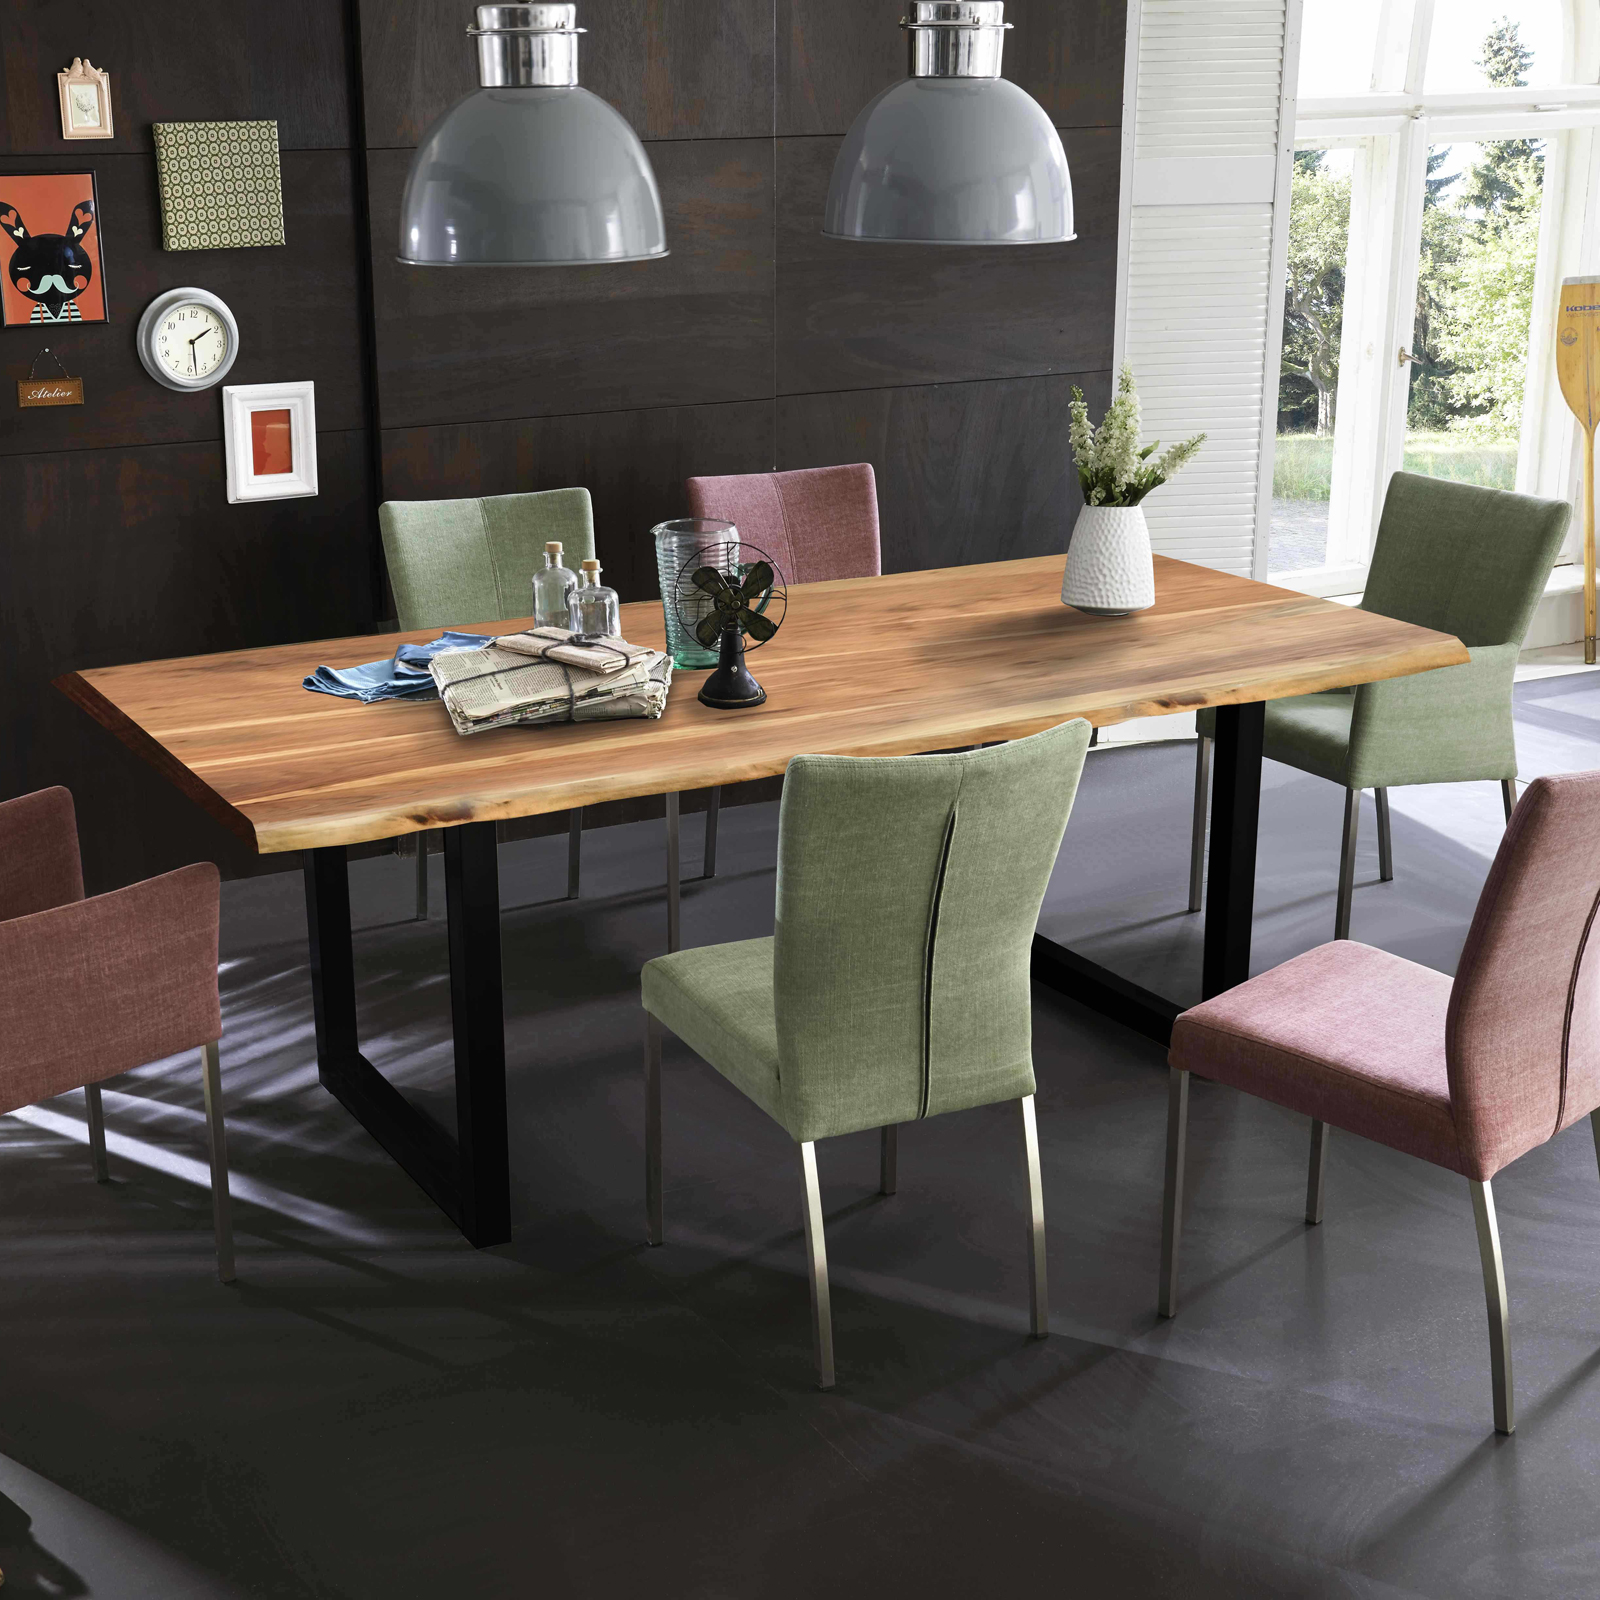 esstisch tops tables eisengestell antikschwarz tischplatte akazie massiv 180 eur 399 95. Black Bedroom Furniture Sets. Home Design Ideas